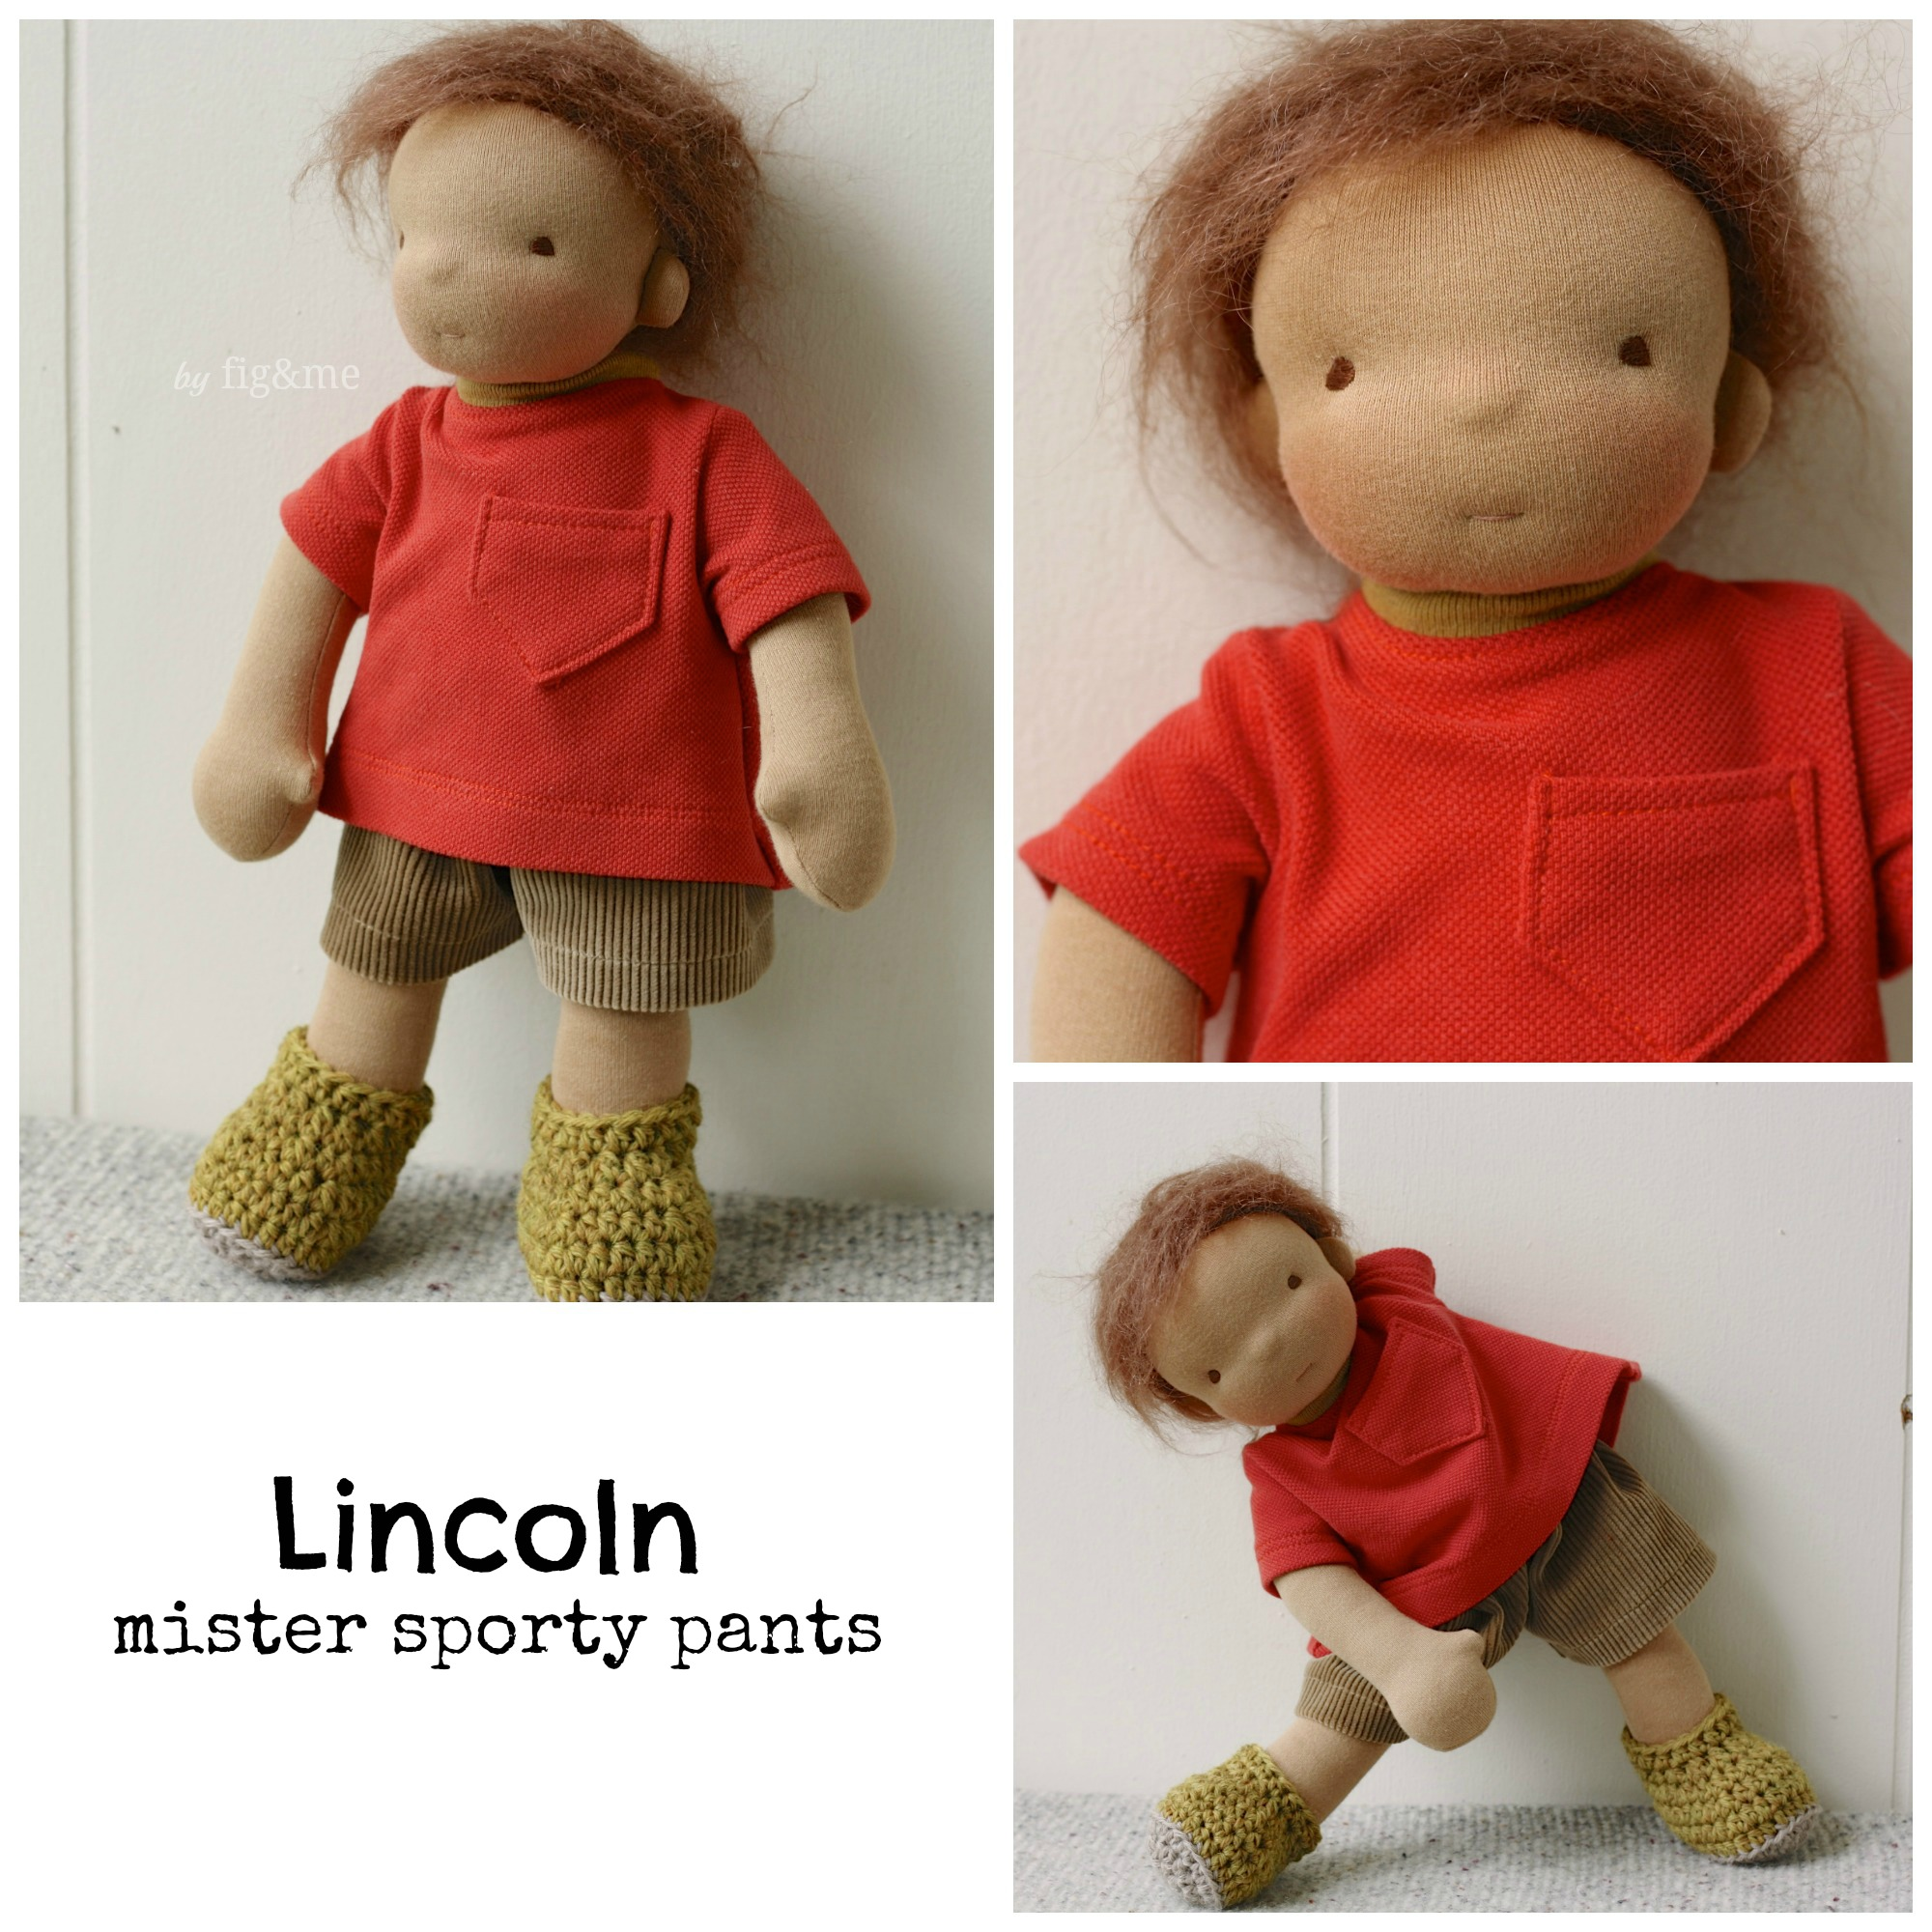 My little Lincoln, by Fig and me.